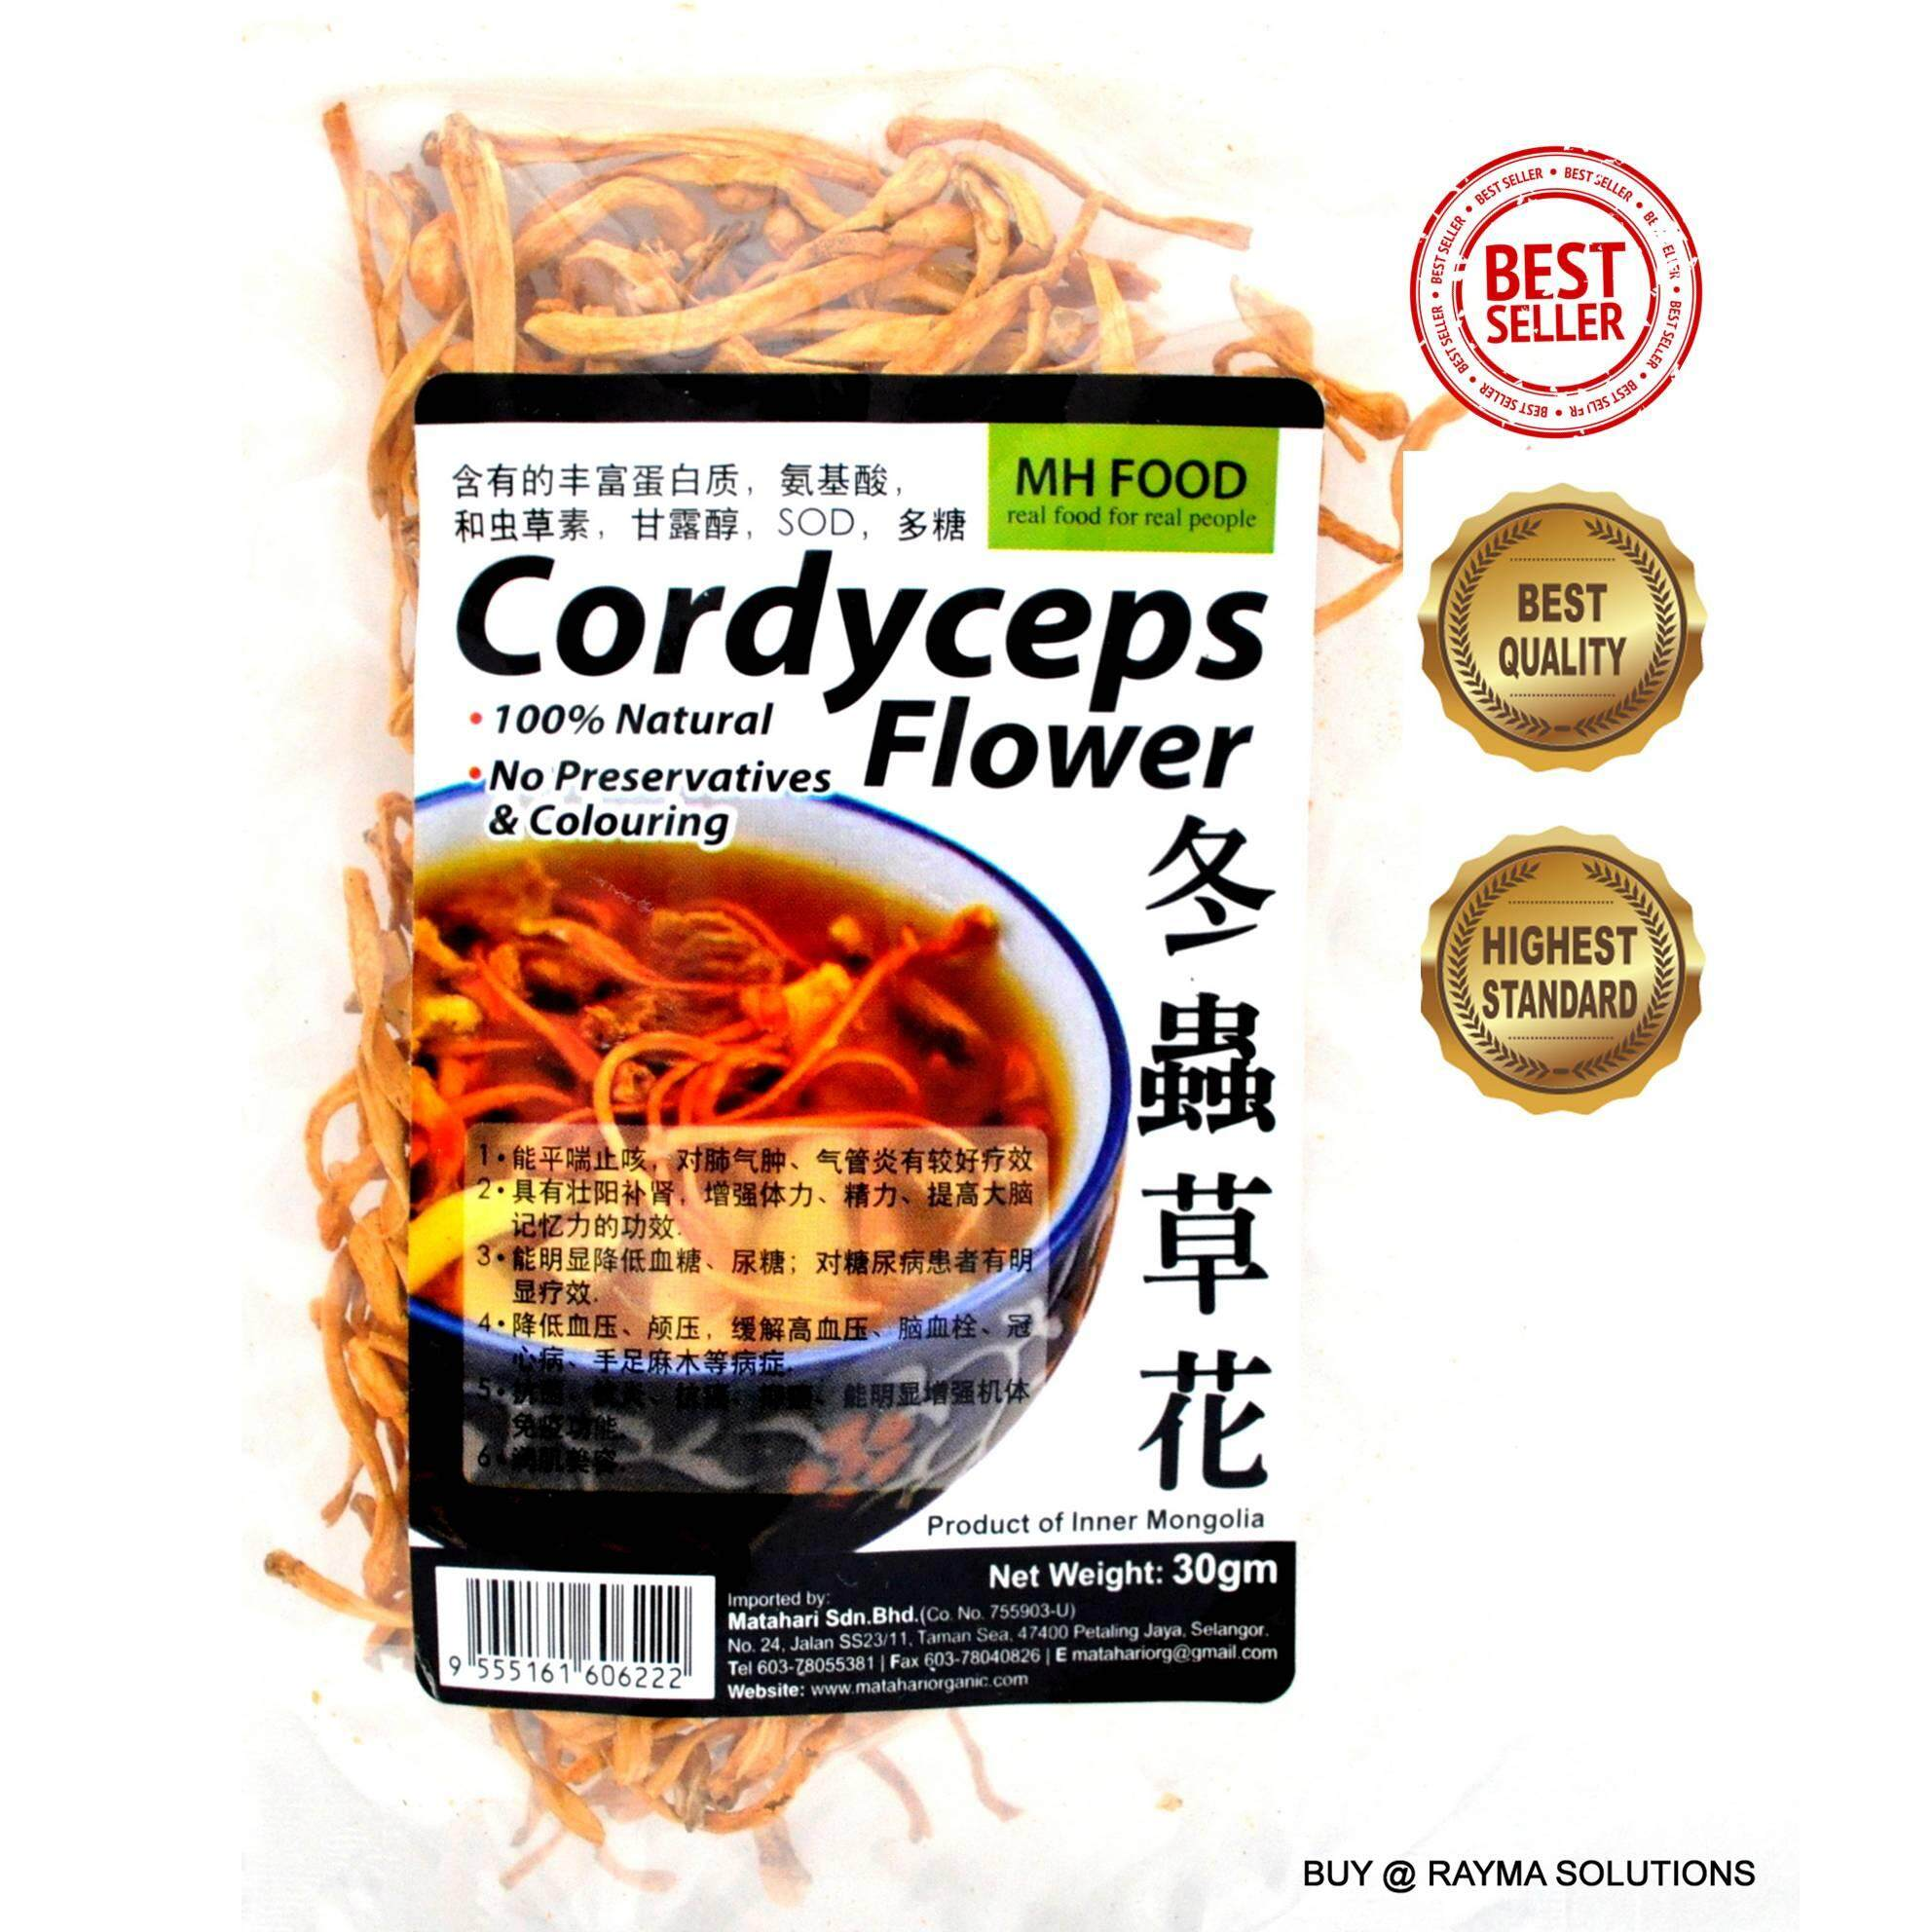 MH FOOD 100% Natural Cordyceps Flower 30g